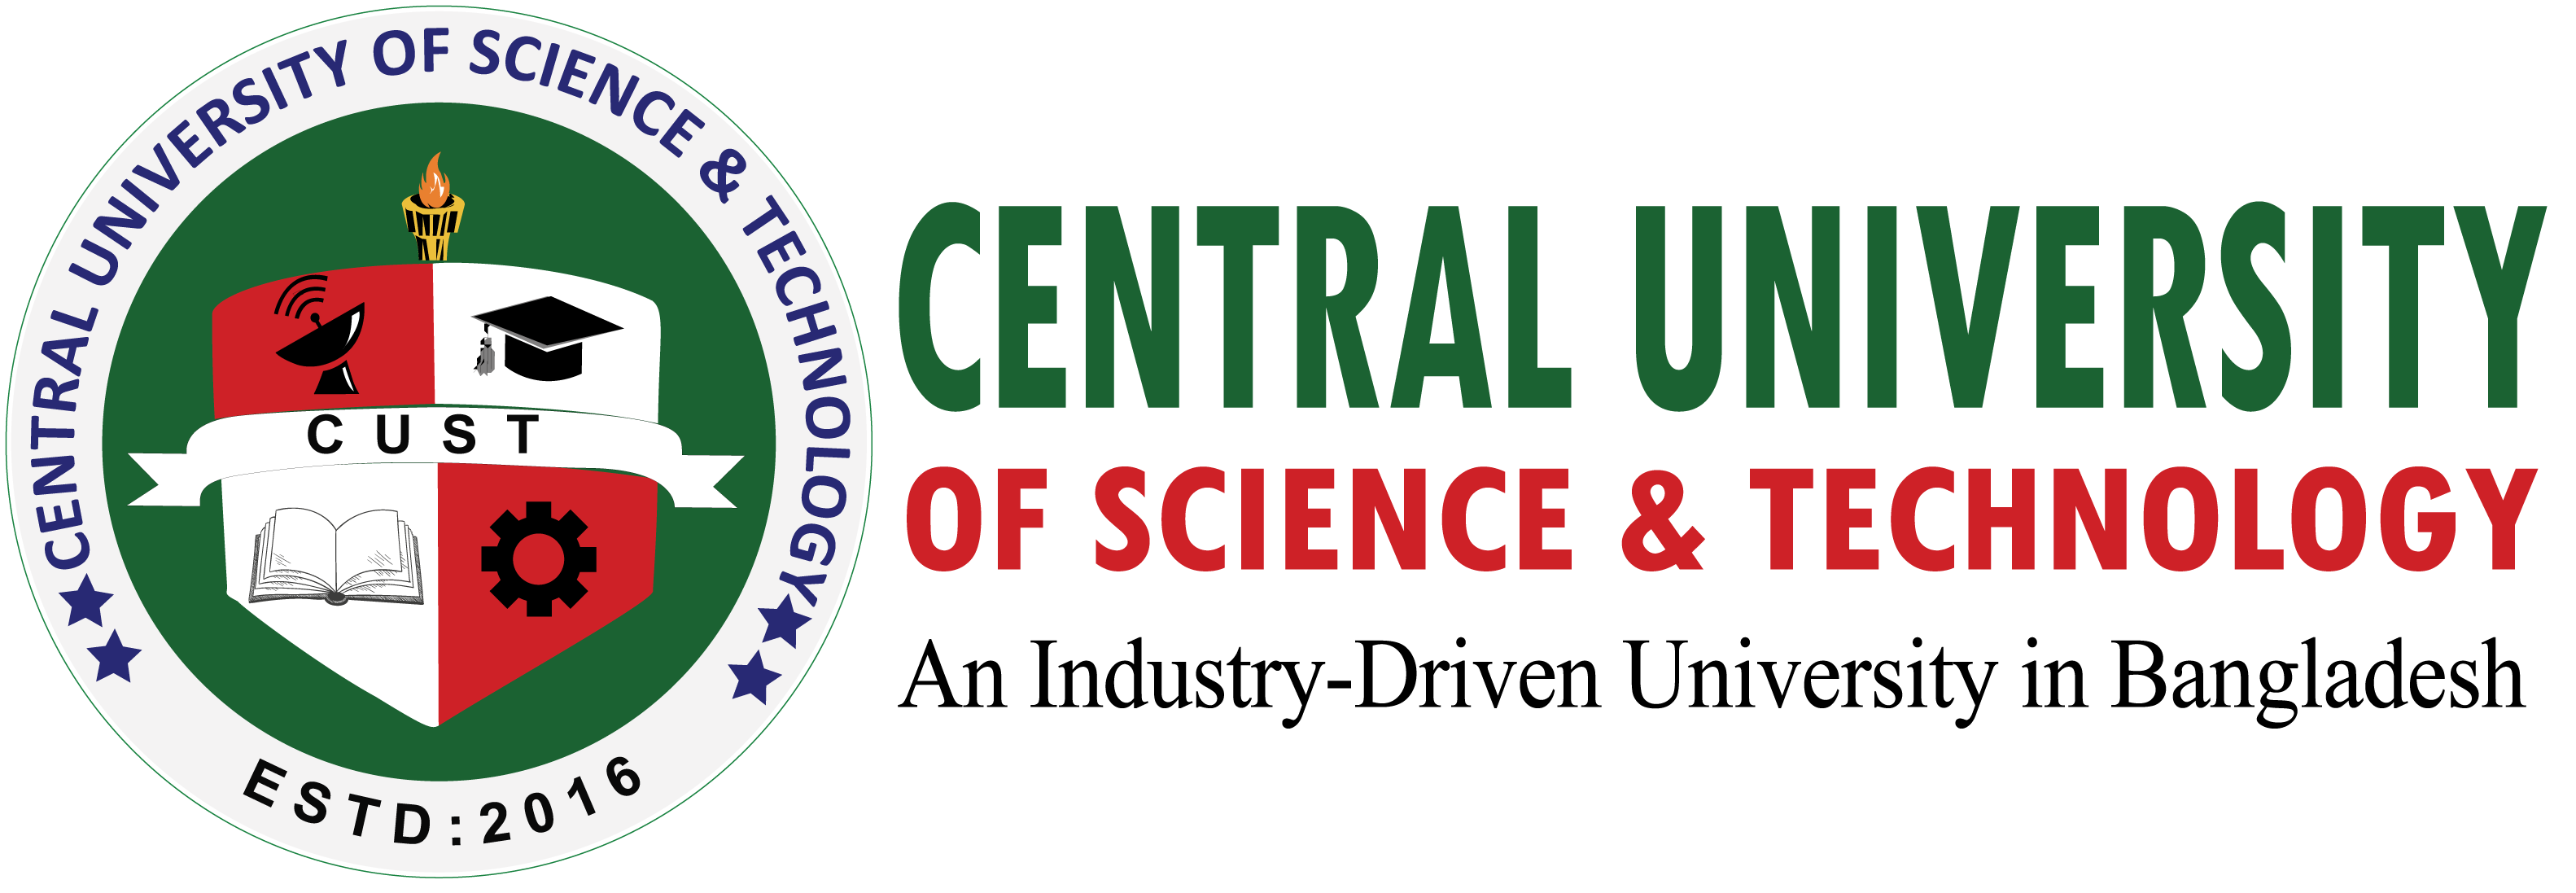 Admission Open, Fall (Bijoy) 2018 - Central University of Science & Technology